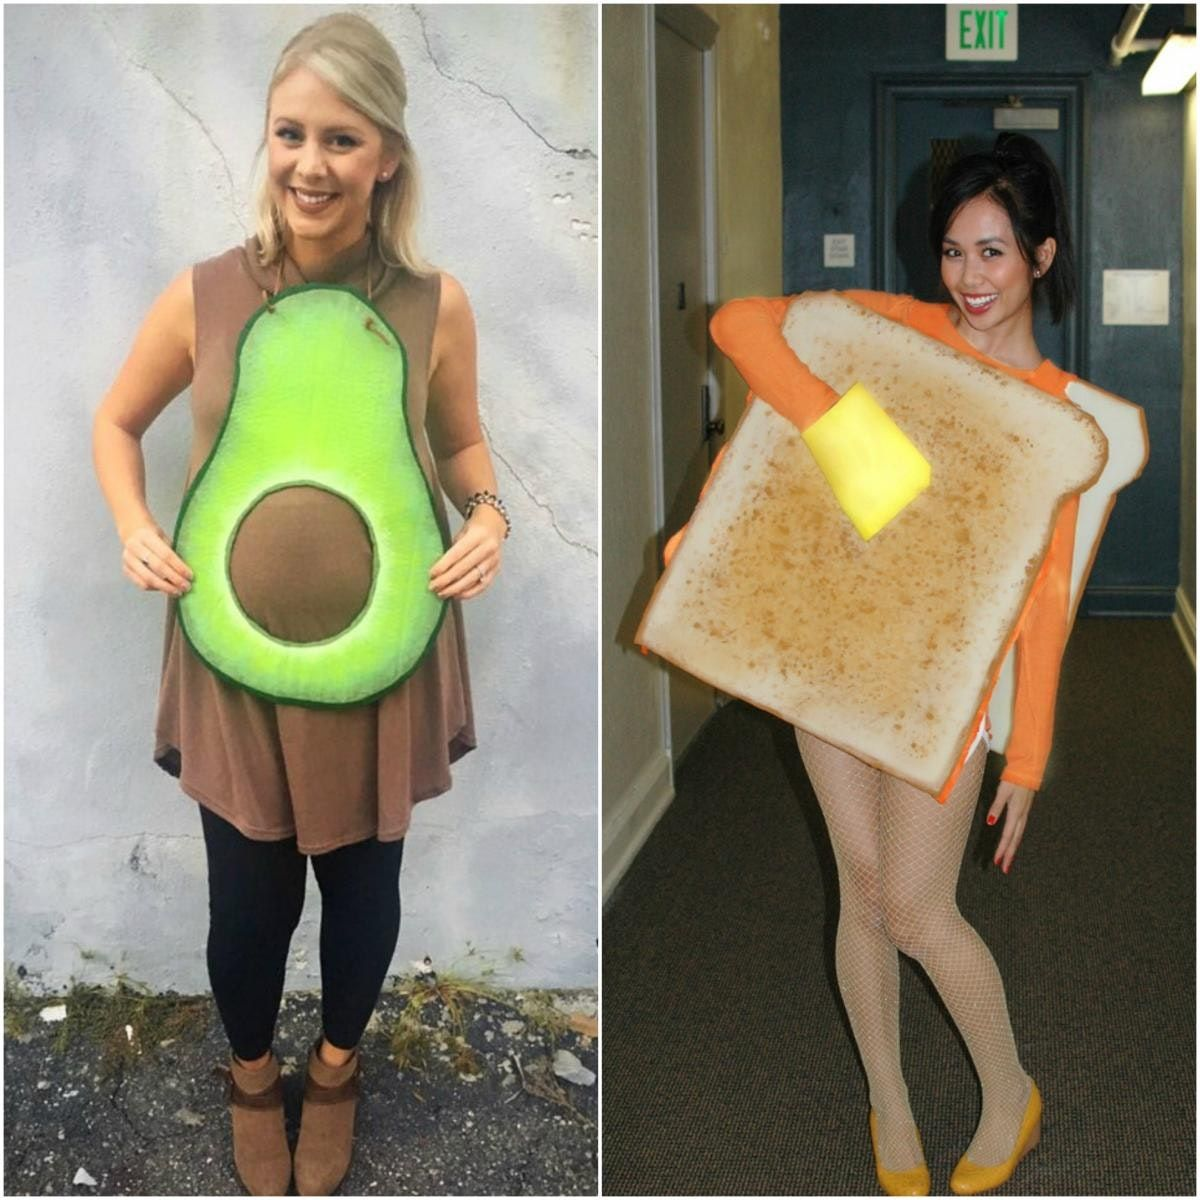 the 50 best trending and most outrageous halloween costume ideas